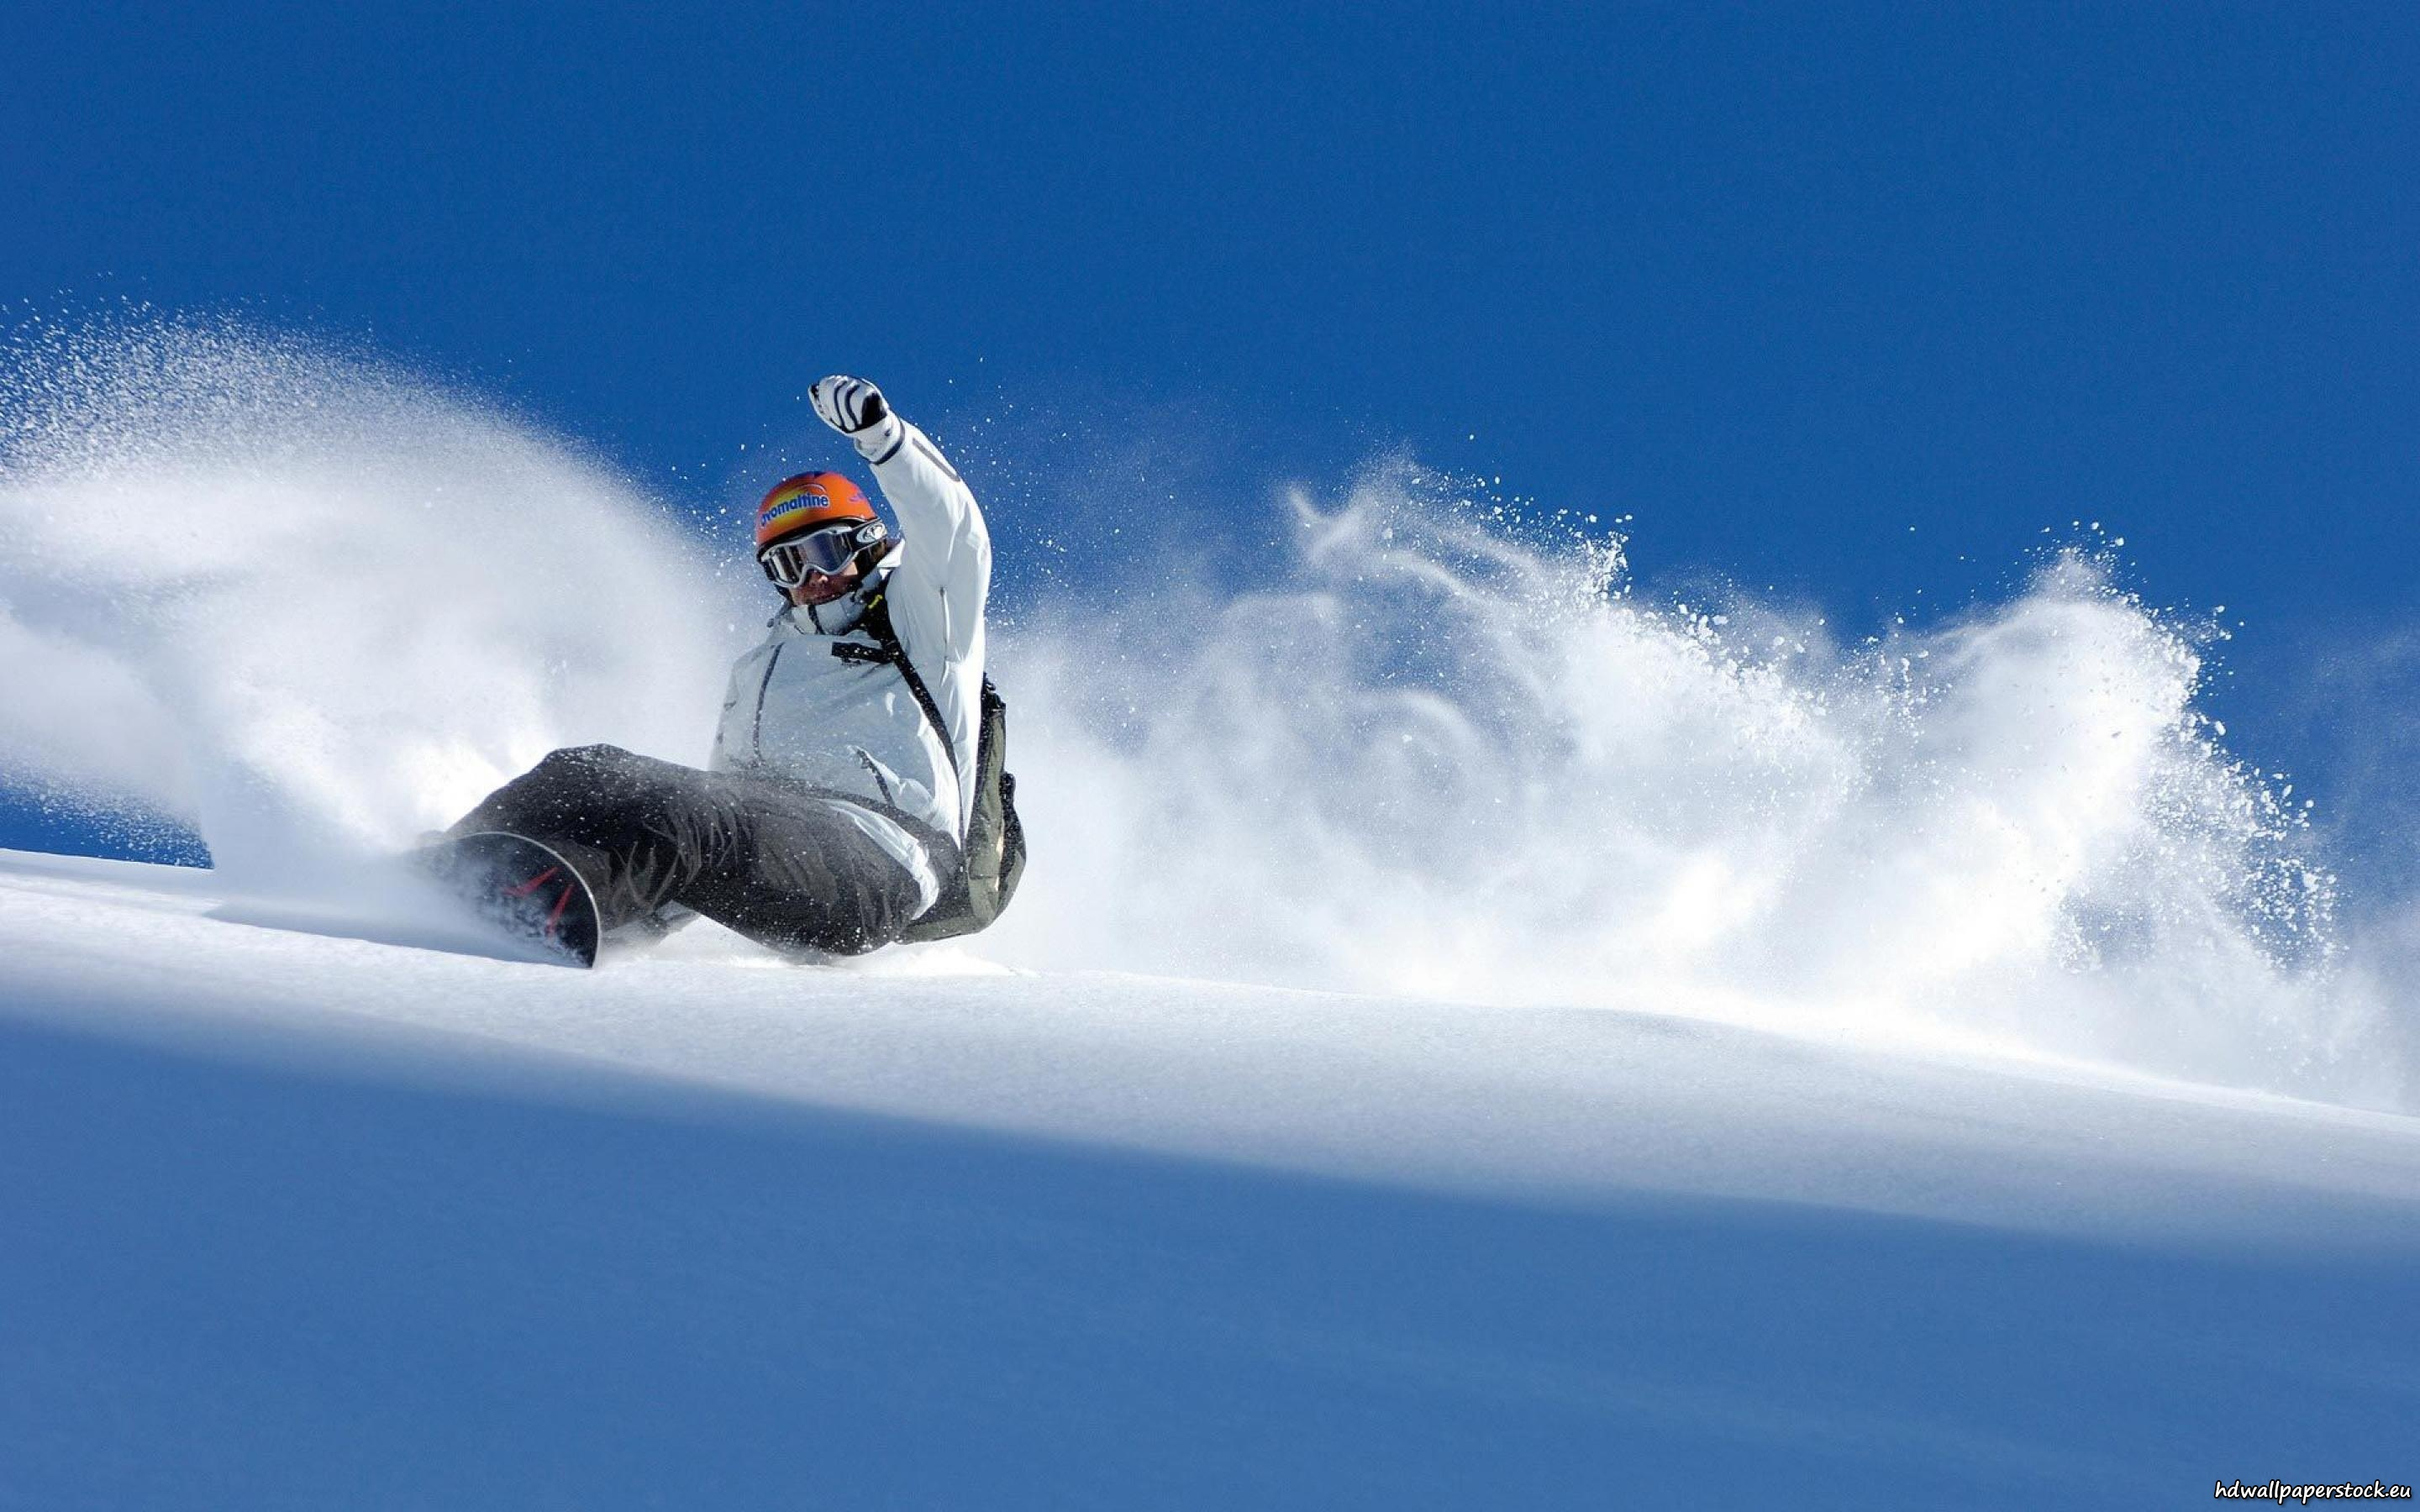 snowboarding hd wallpaper | 2880x1800 | #73448